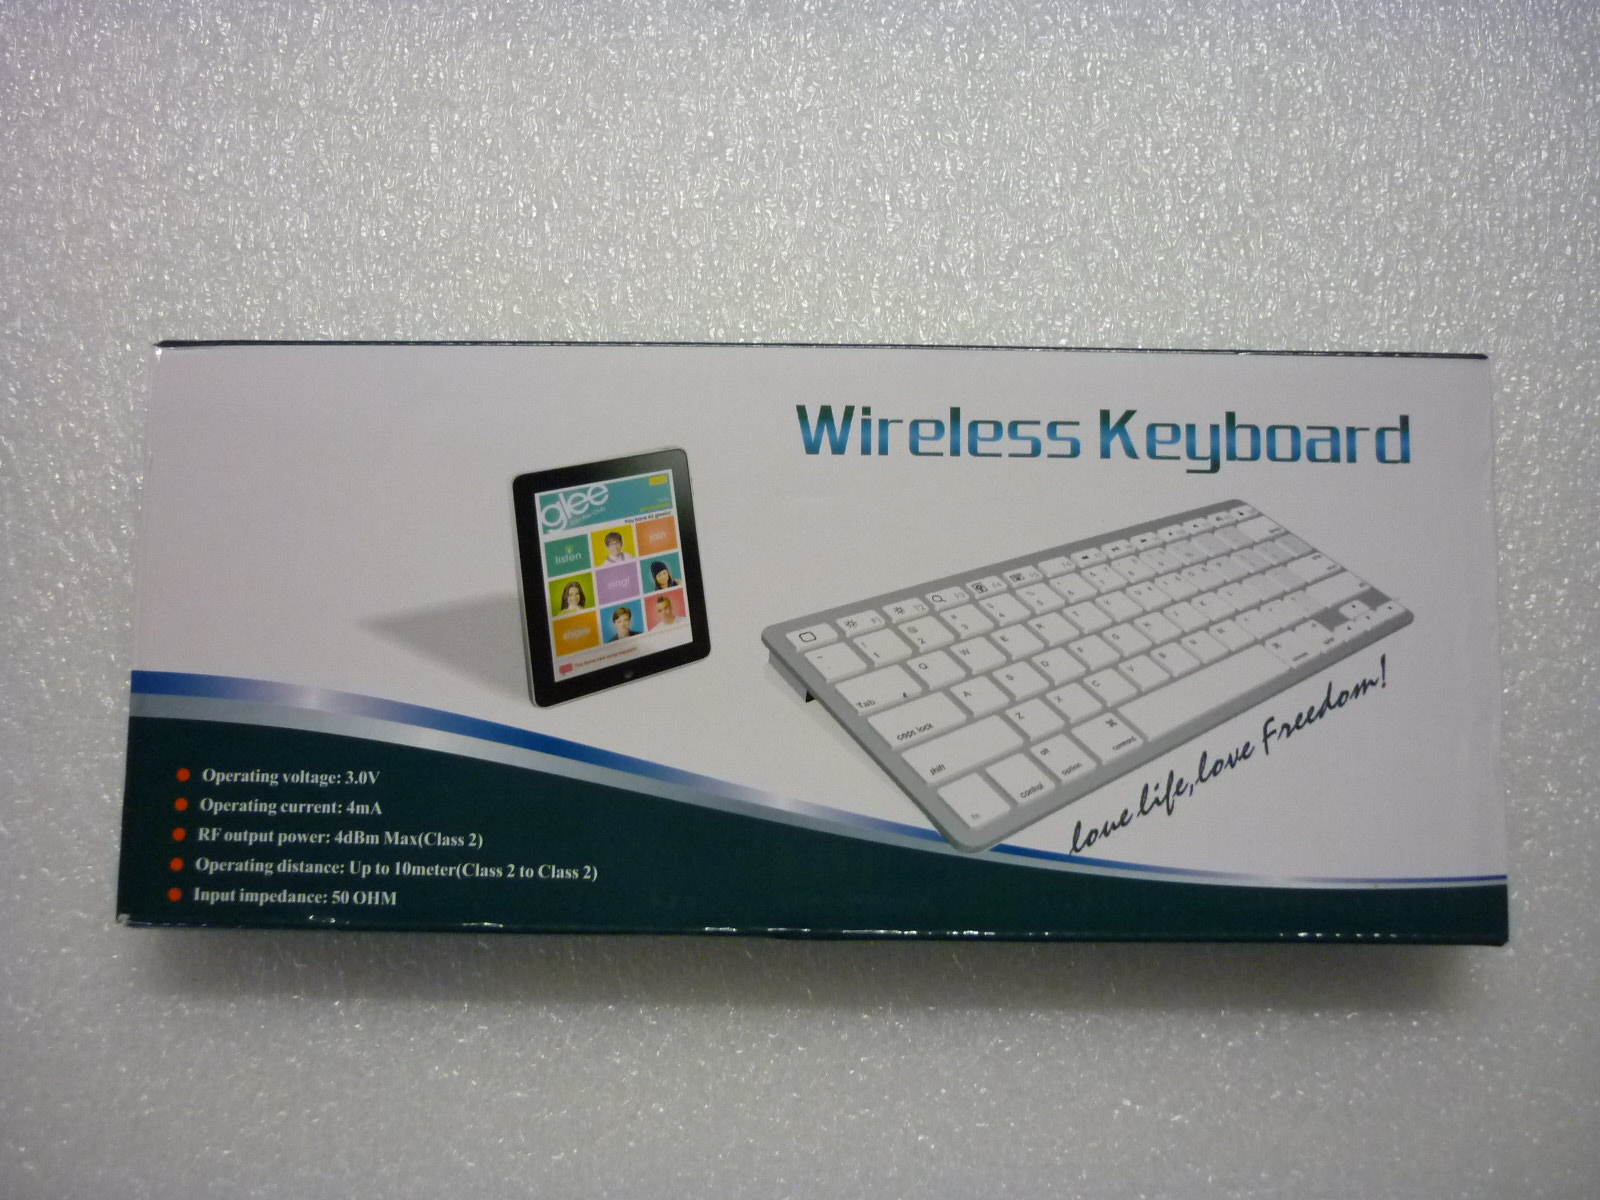 Apple wireless keyboard - Operating distance: Up to 10meters